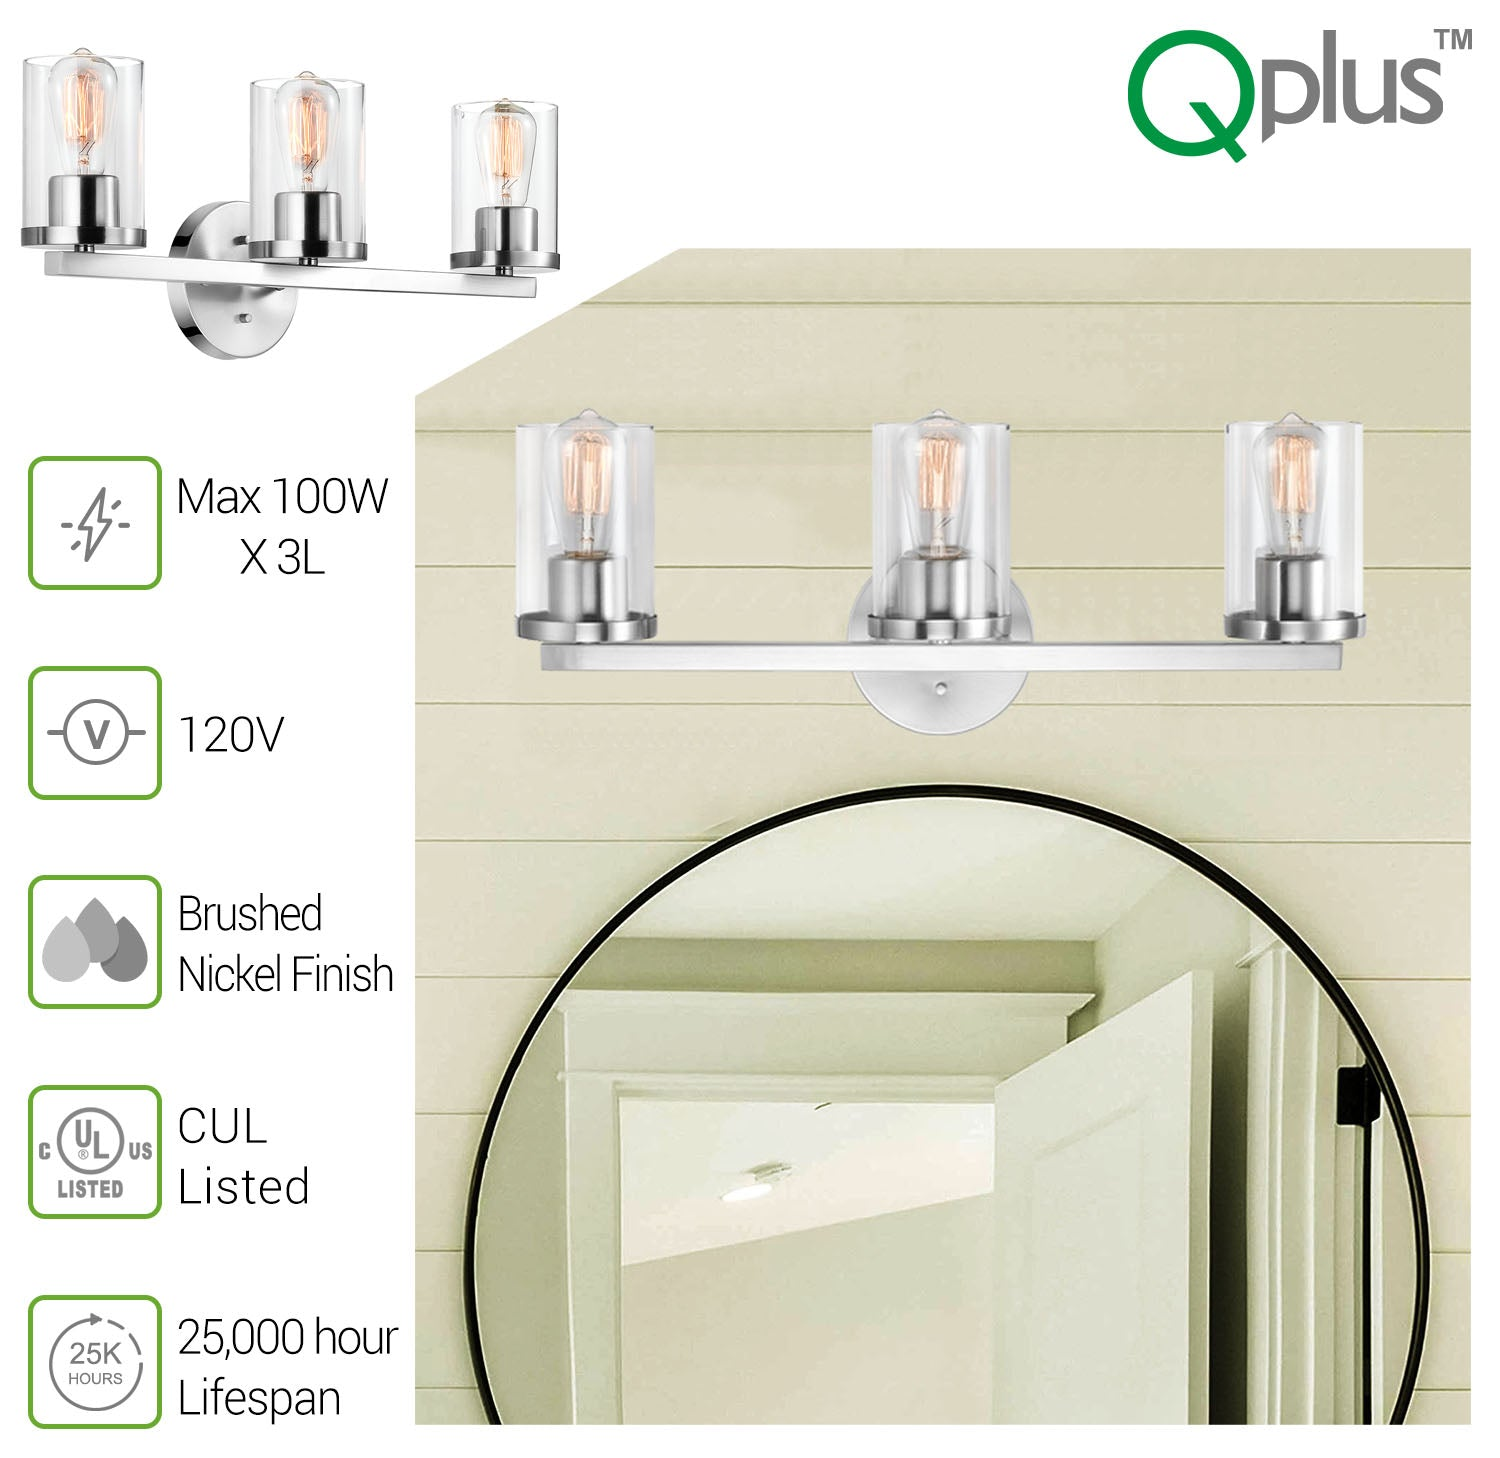 QPlus Bathroom Vanity Wall Light Fixture, 3 Lights in E26 Base & Clear Glass Sconces with Bathroom Accessories - Brush Nickel Finish + A21 LED Bulbs Free